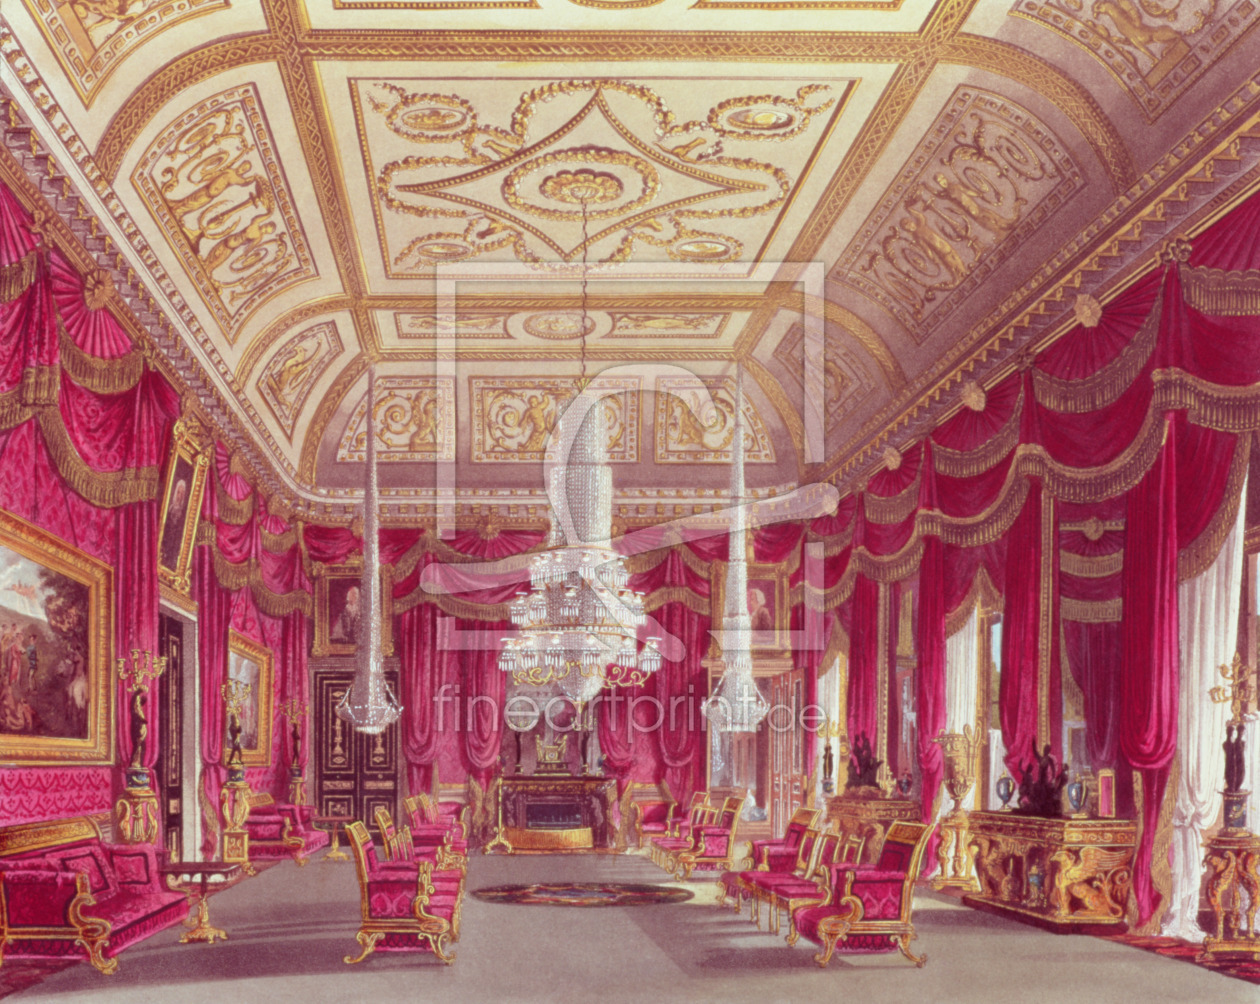 Bild-Nr.: 31002058 The Crimson Drawing Room, Carlton House from Pyne's 'Royal Residences', 1818 erstellt von Pyne, William Henry